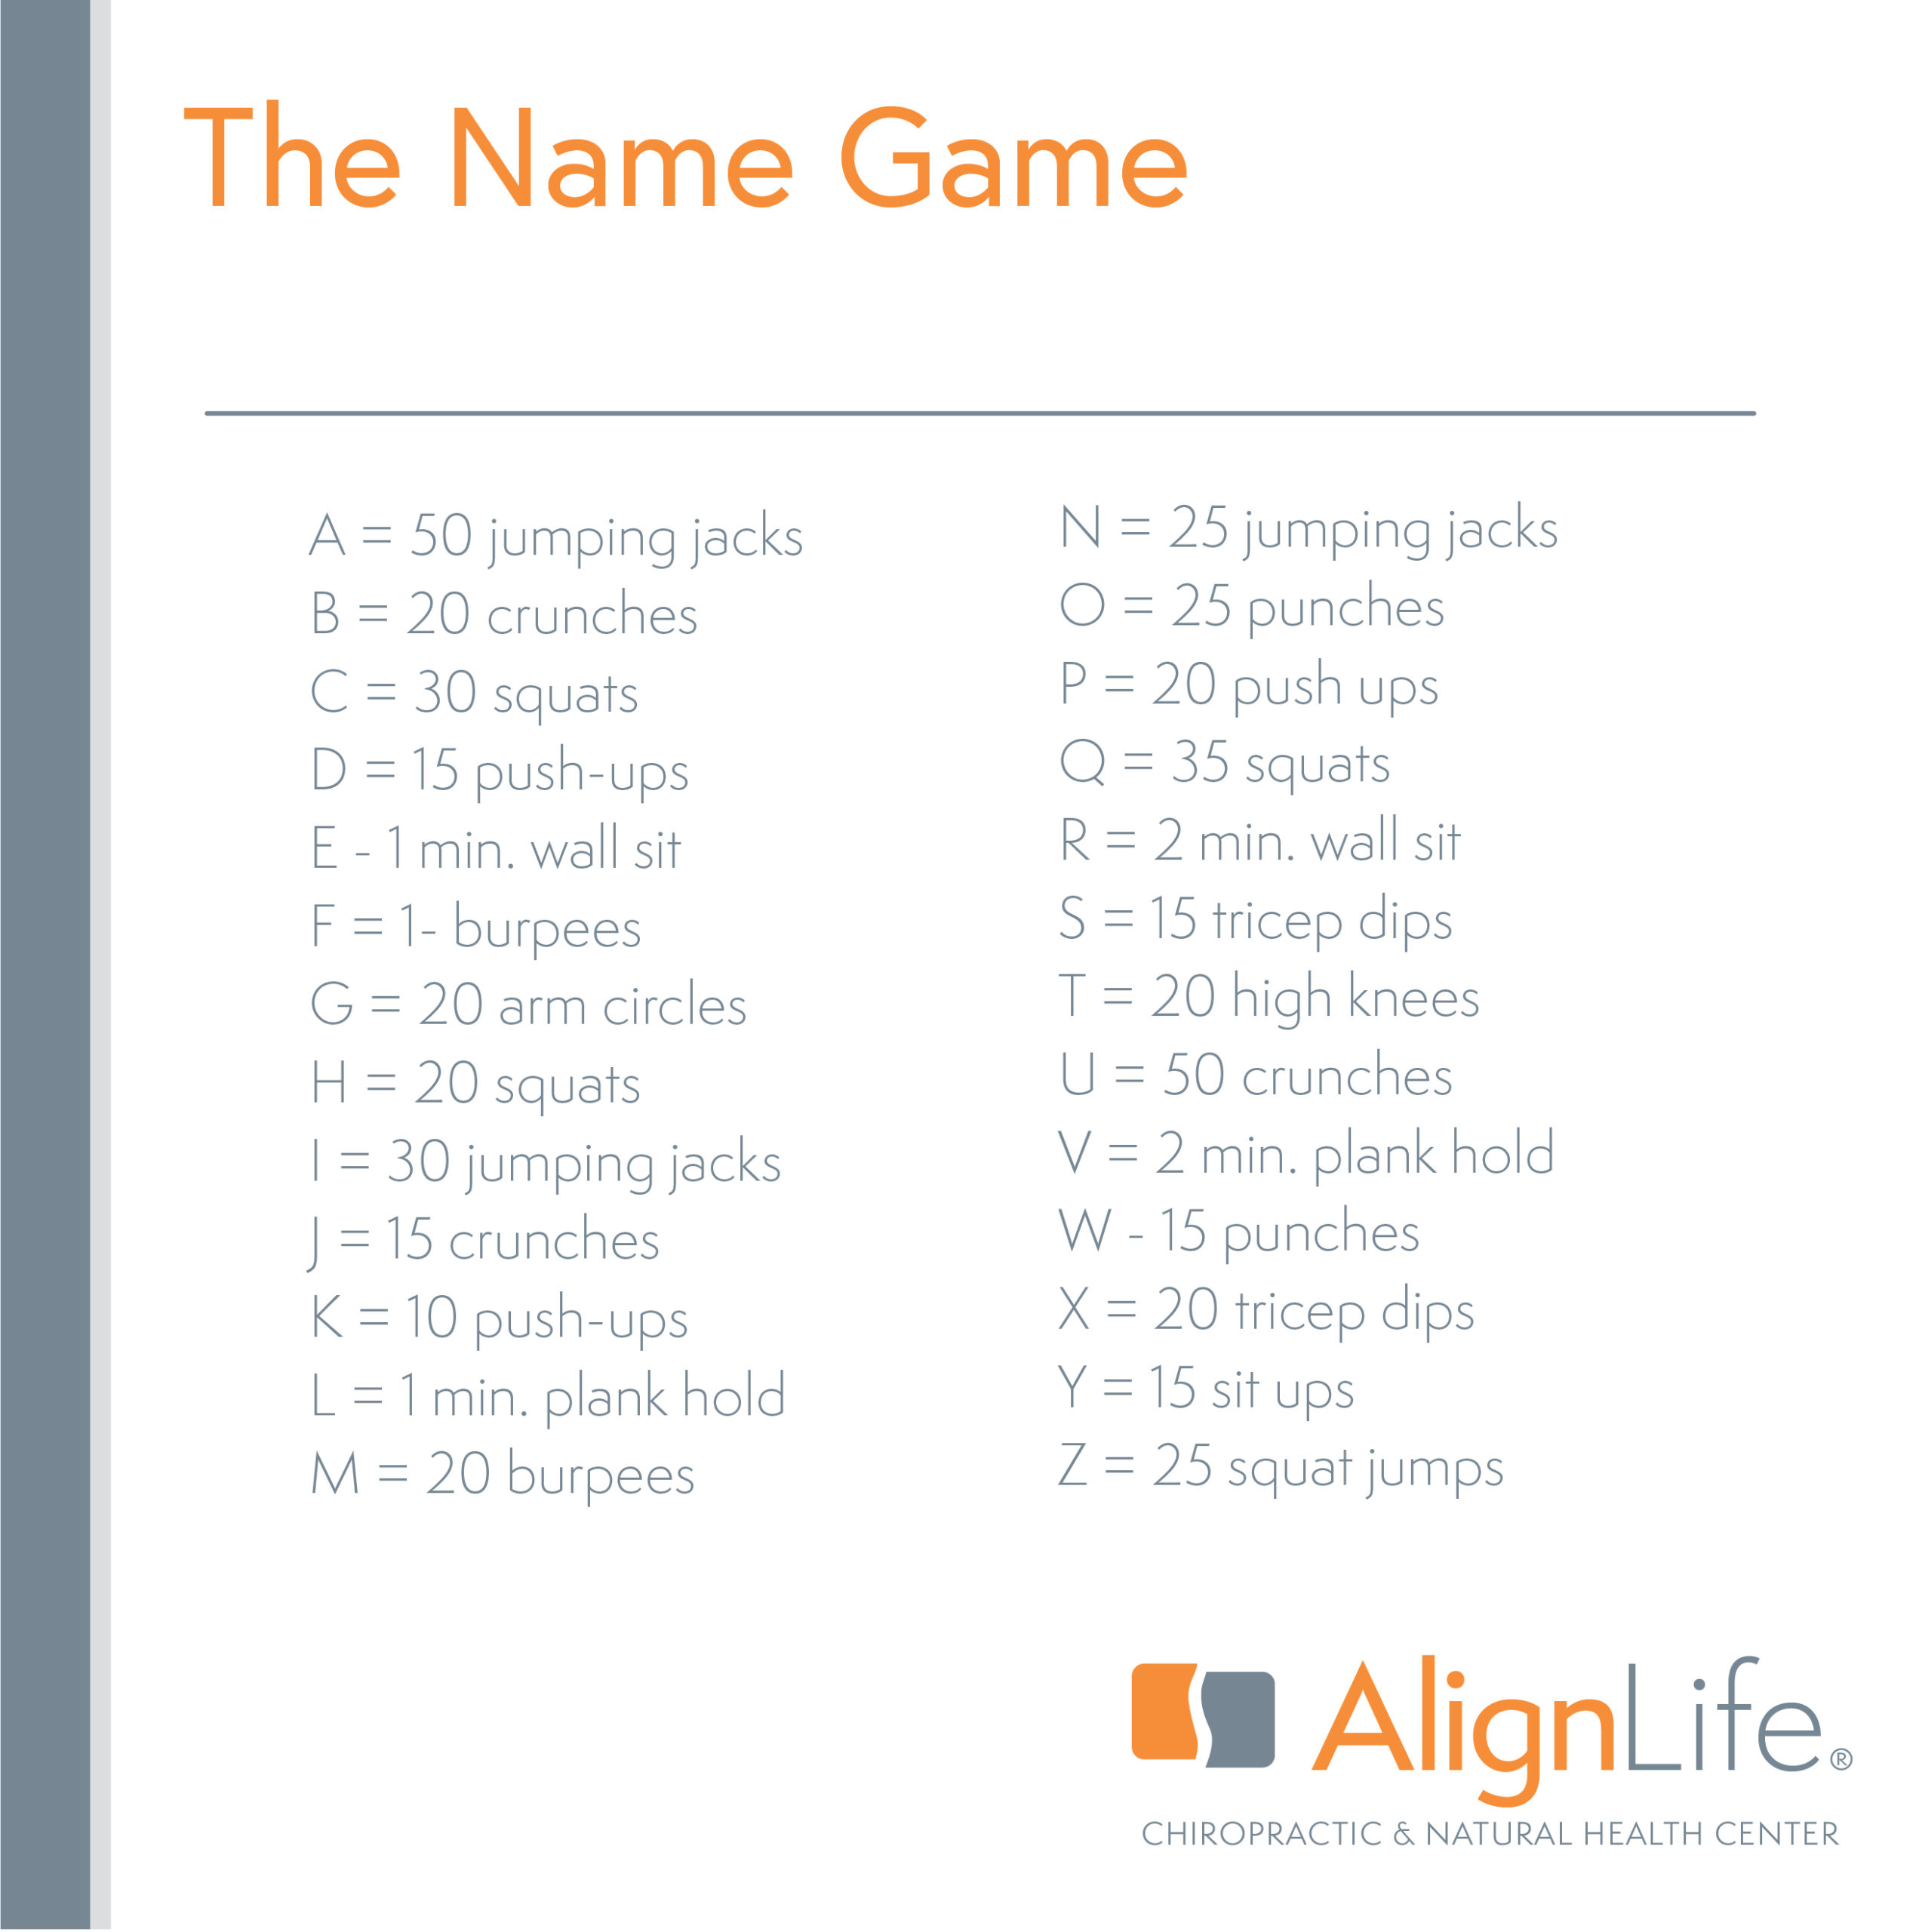 A to Z Name Game Workout